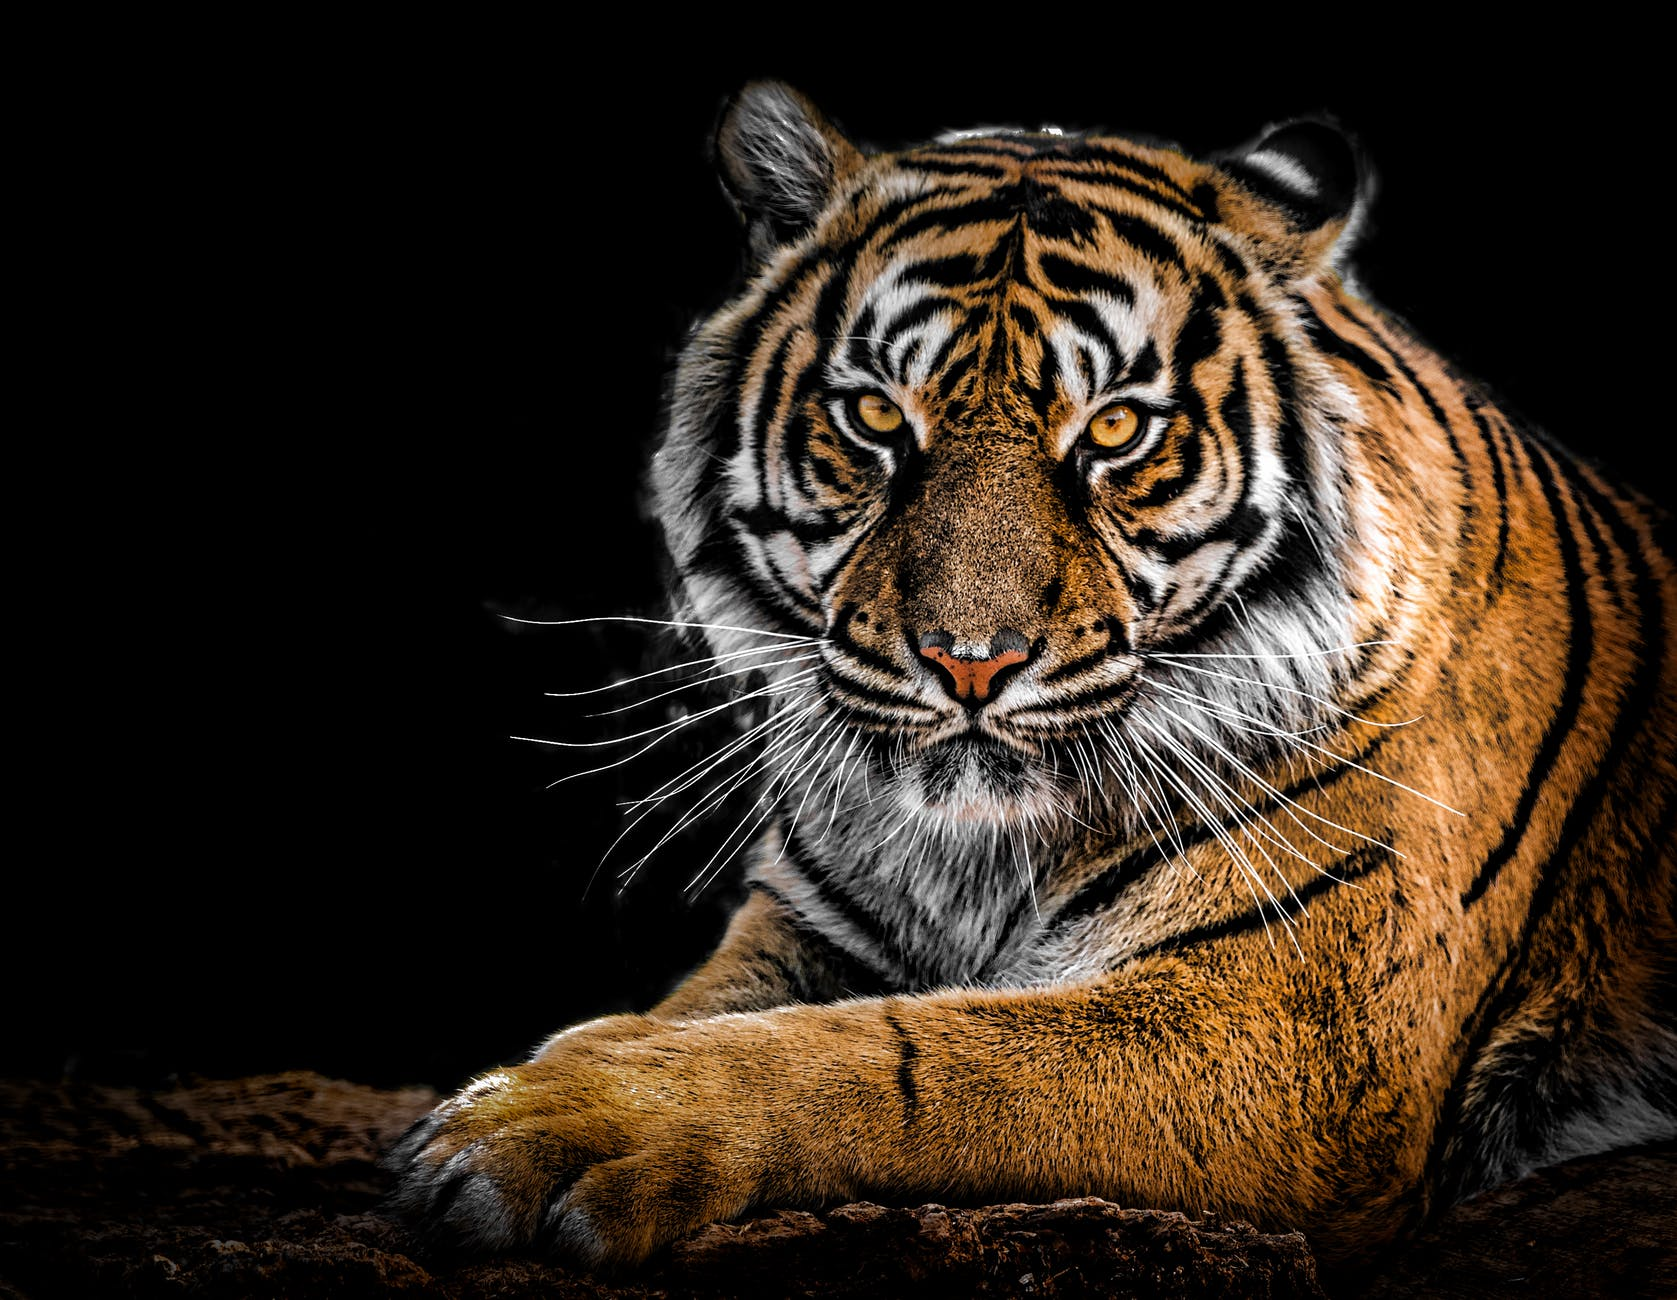 close up photography of tiger